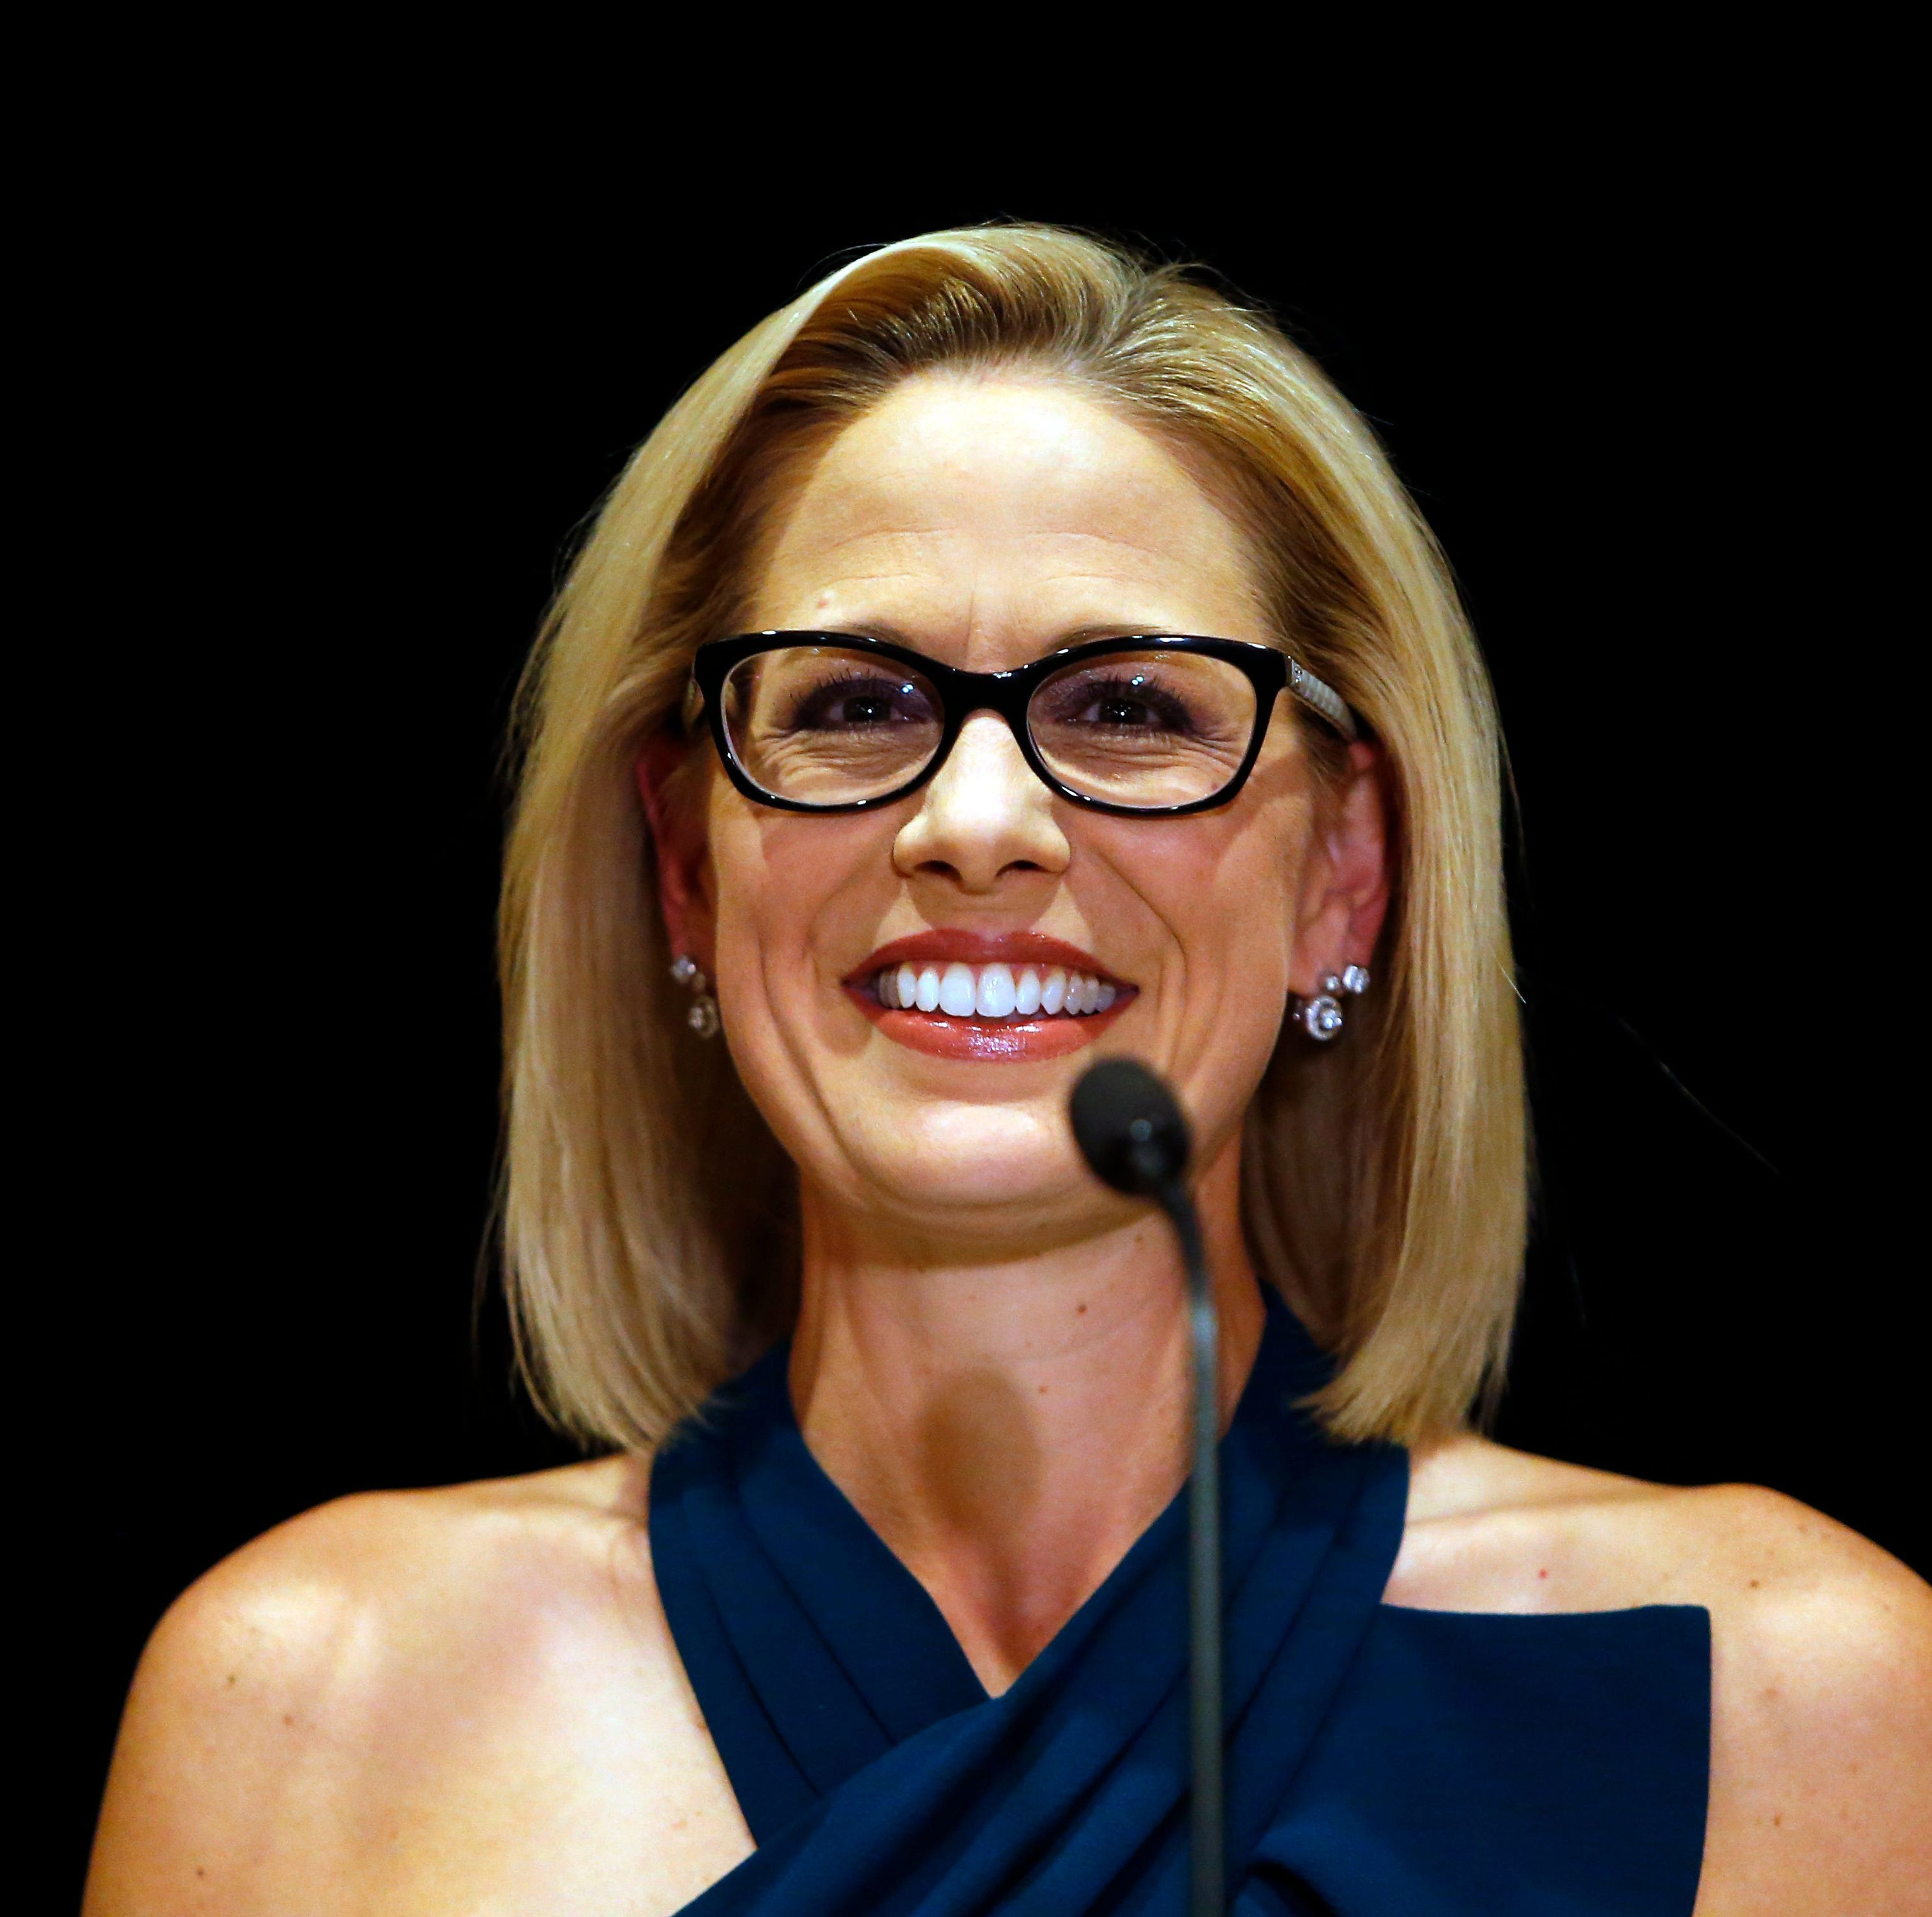 Day 12, and Kyrsten Sinema still won't take a stand on the Mueller report